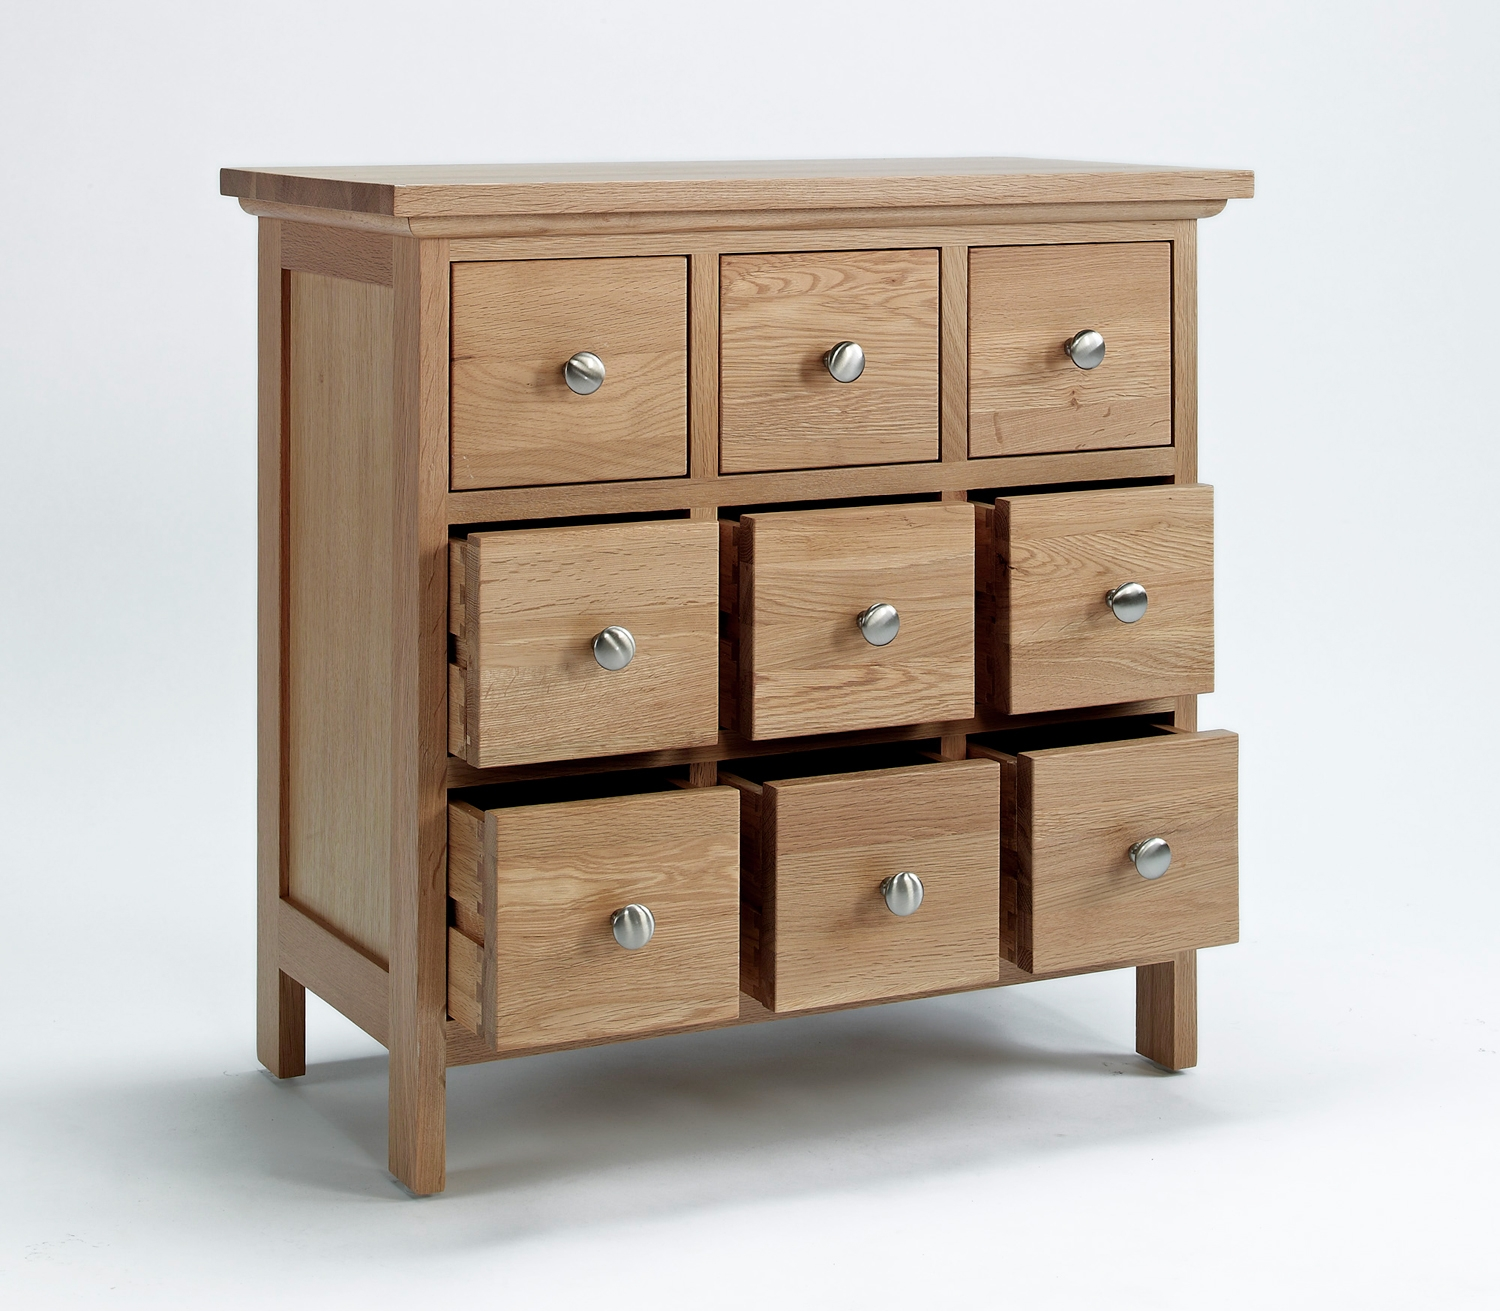 Nine parts of cd storage drawers with wooden style